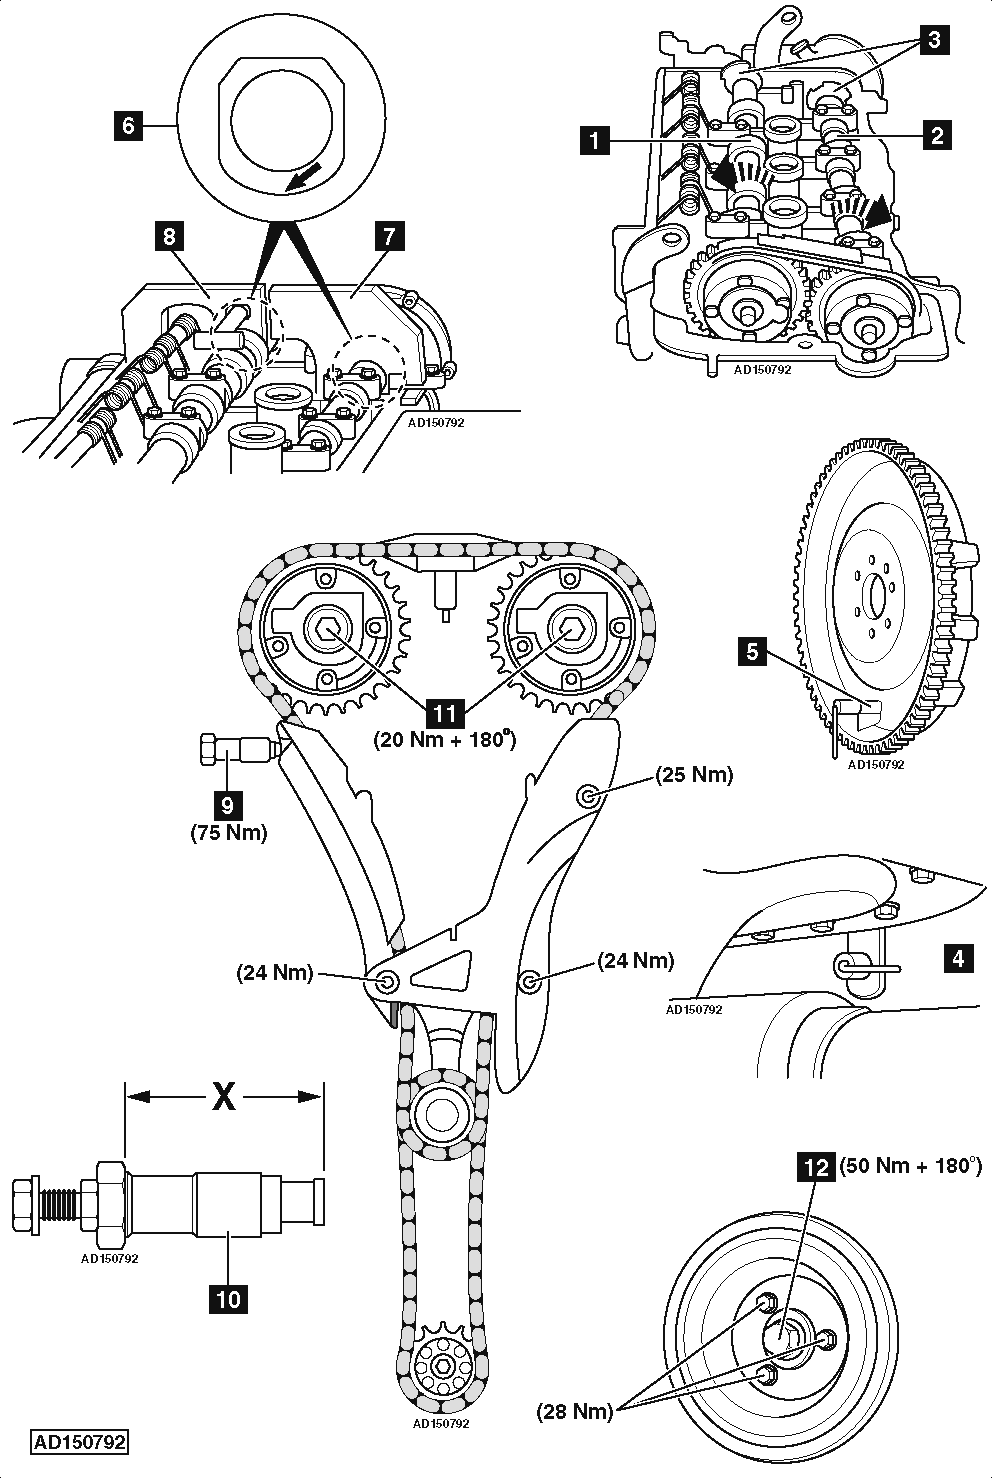 Peugeot 308 Timing Chain Diagram Wire Schematic Gm Engine How To Replace On 1 4 Vti 2010 2002 Ford V8 Marks 22